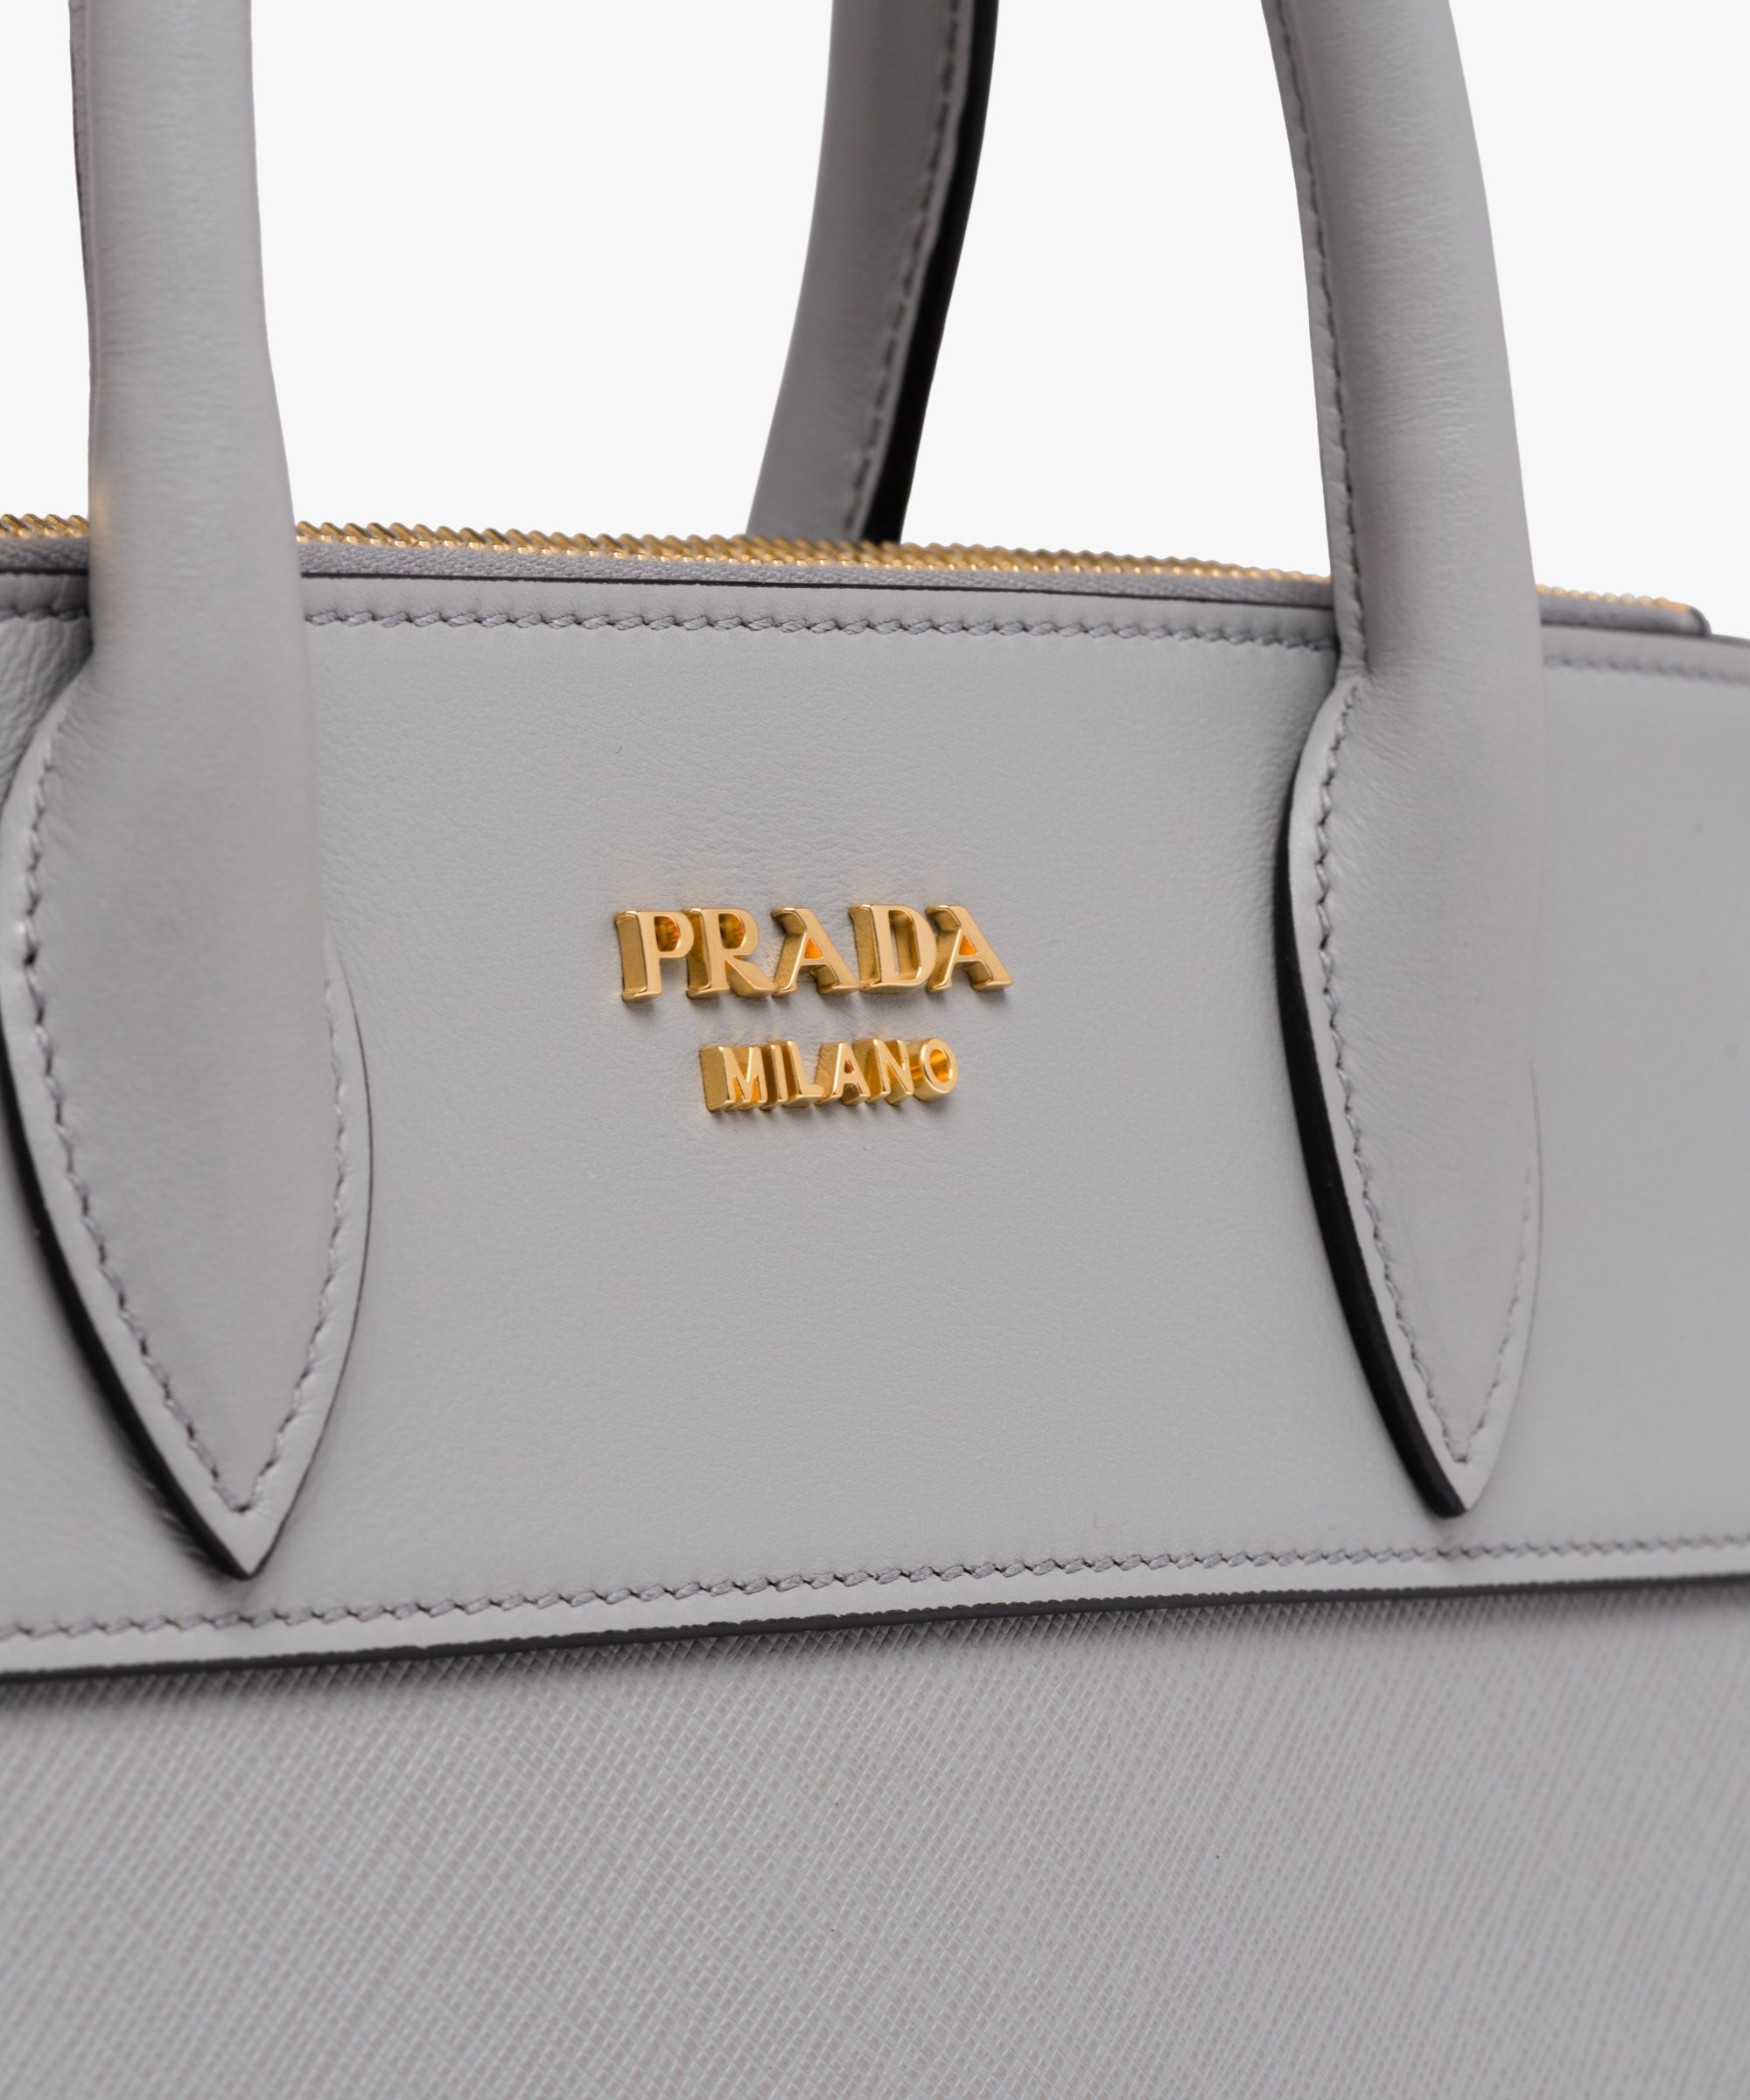 078295f98c66e8 Prada Paradigme Saffiano and calf leather bag Double leather handle  Detachable leather shoulder strap Gold-